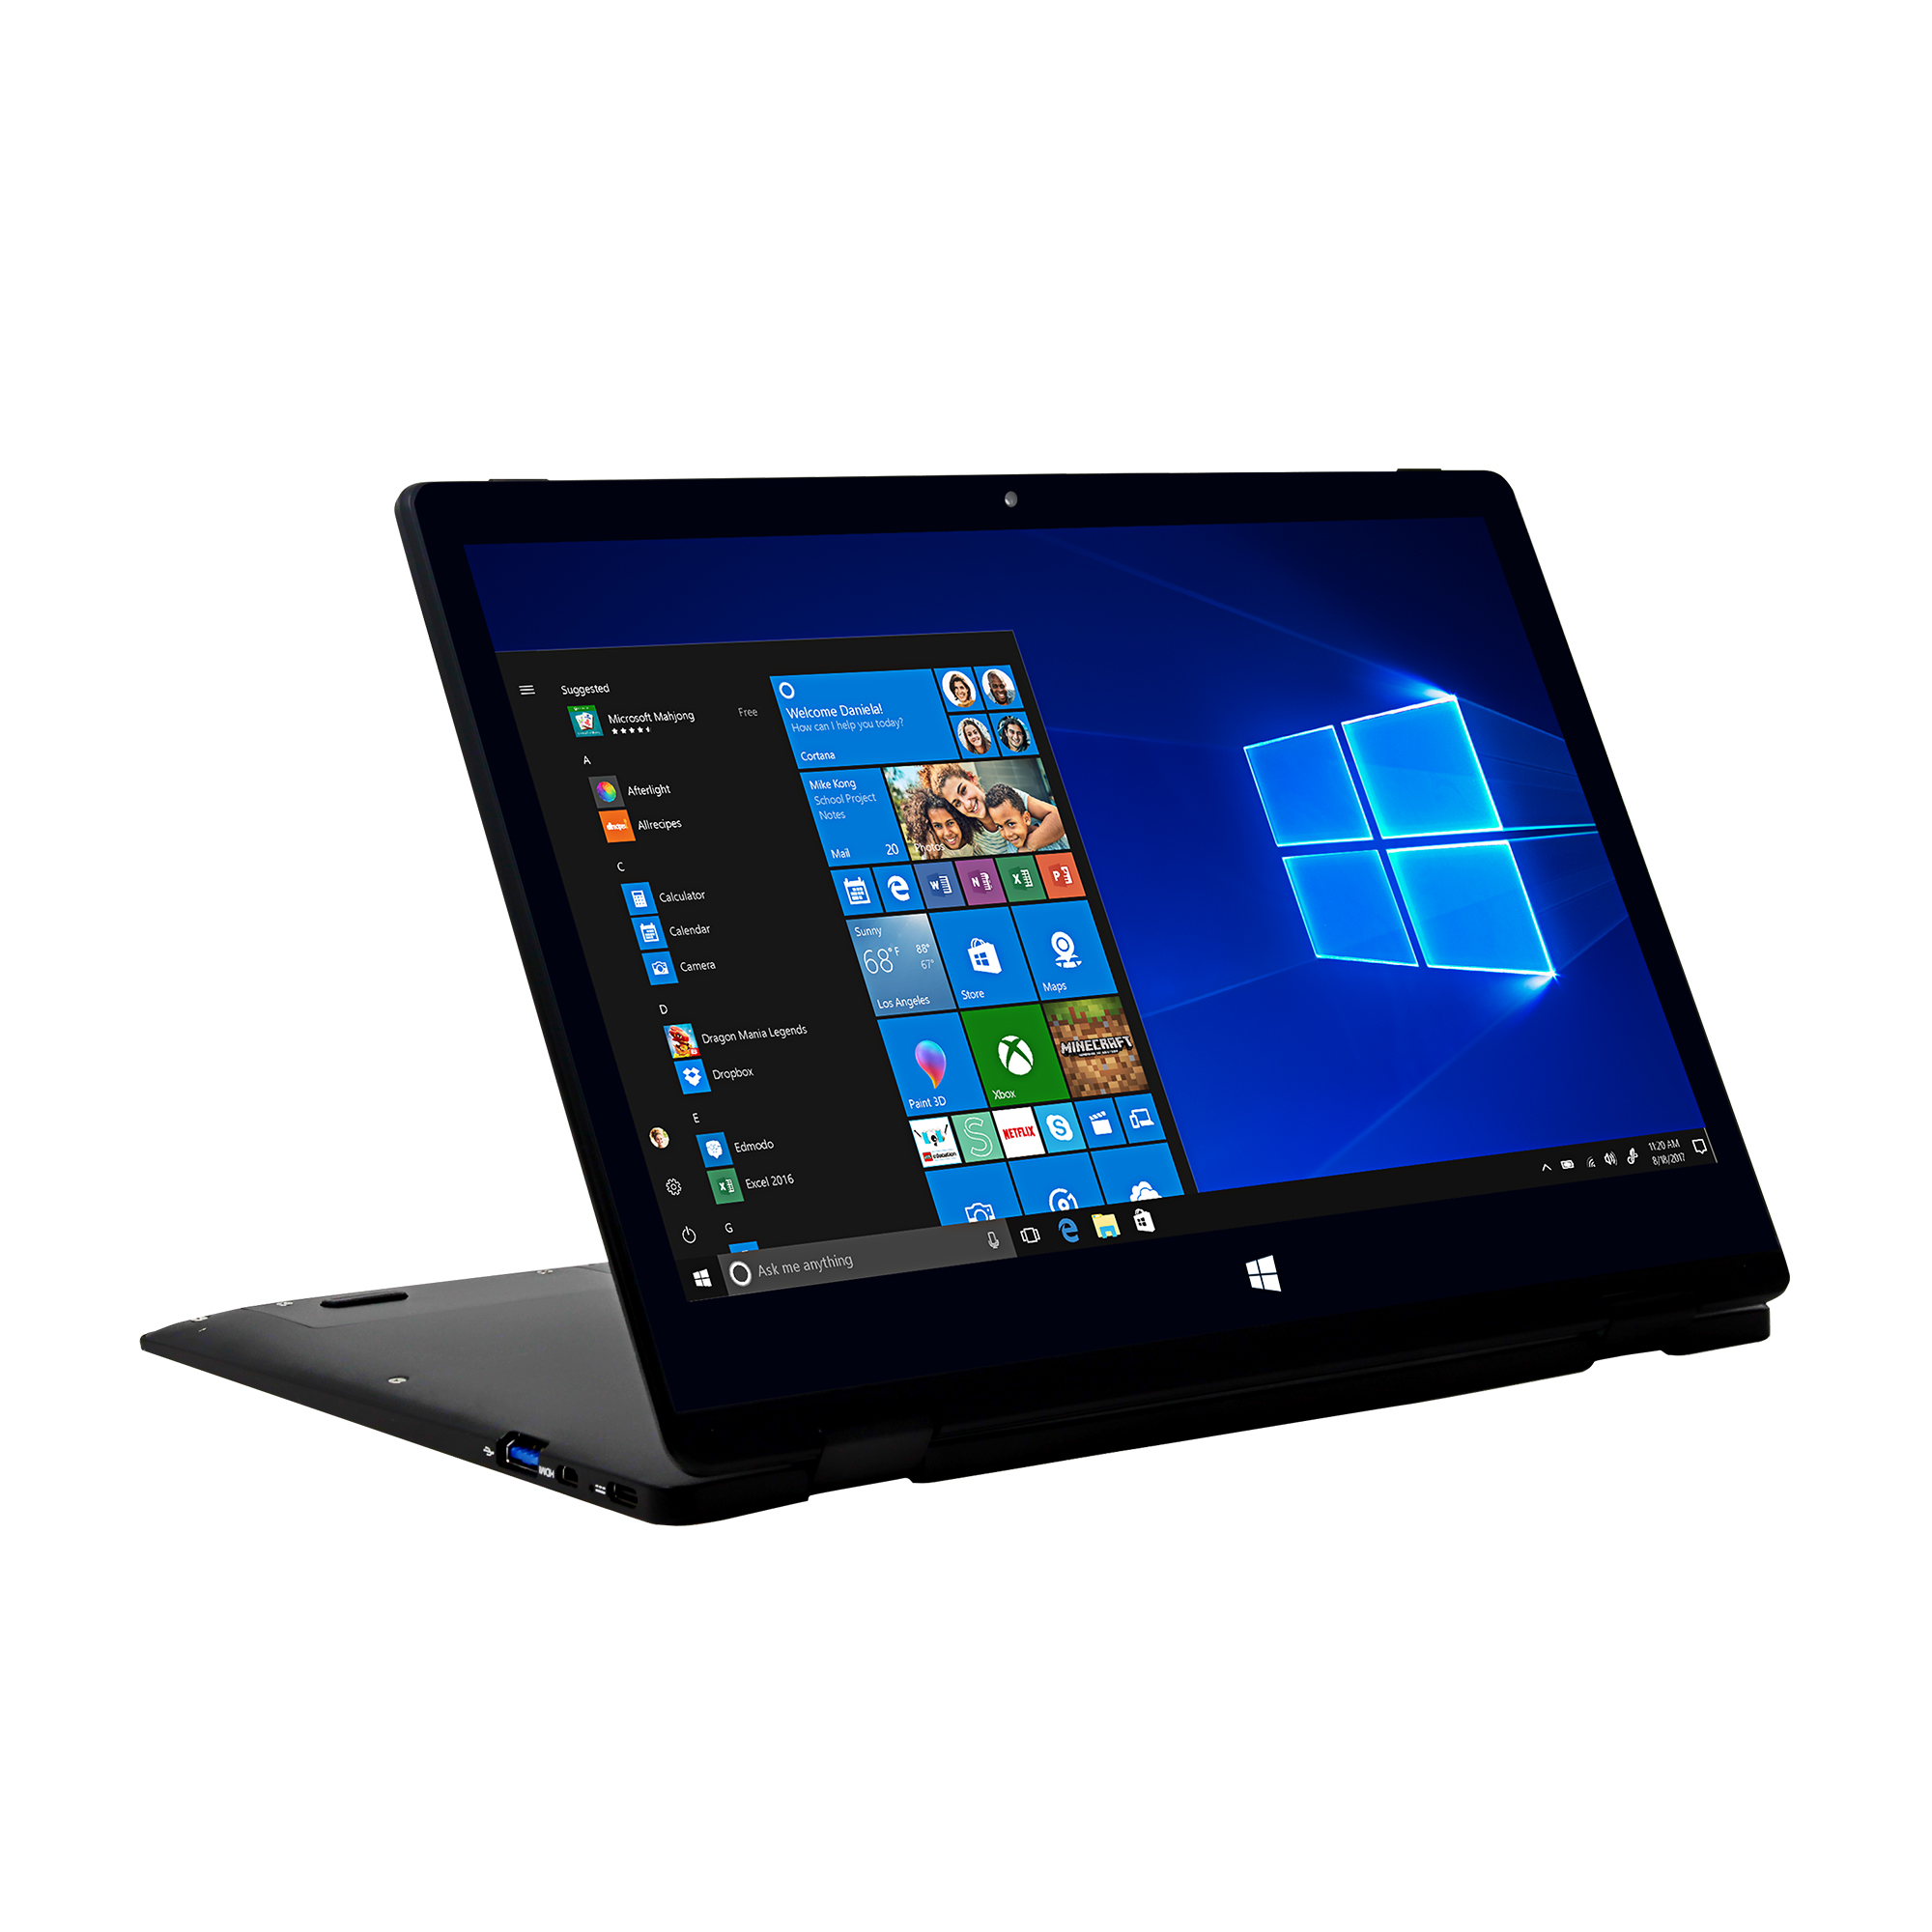 "EVOO 11.6"" Convertible Touchscreen Laptop - Elite Series, Windows 10 S, Windows Hello (Fingerprint Scanner), Windows Ink, (Smart Stylus Included), Cortana, Micro HDMI, Black"